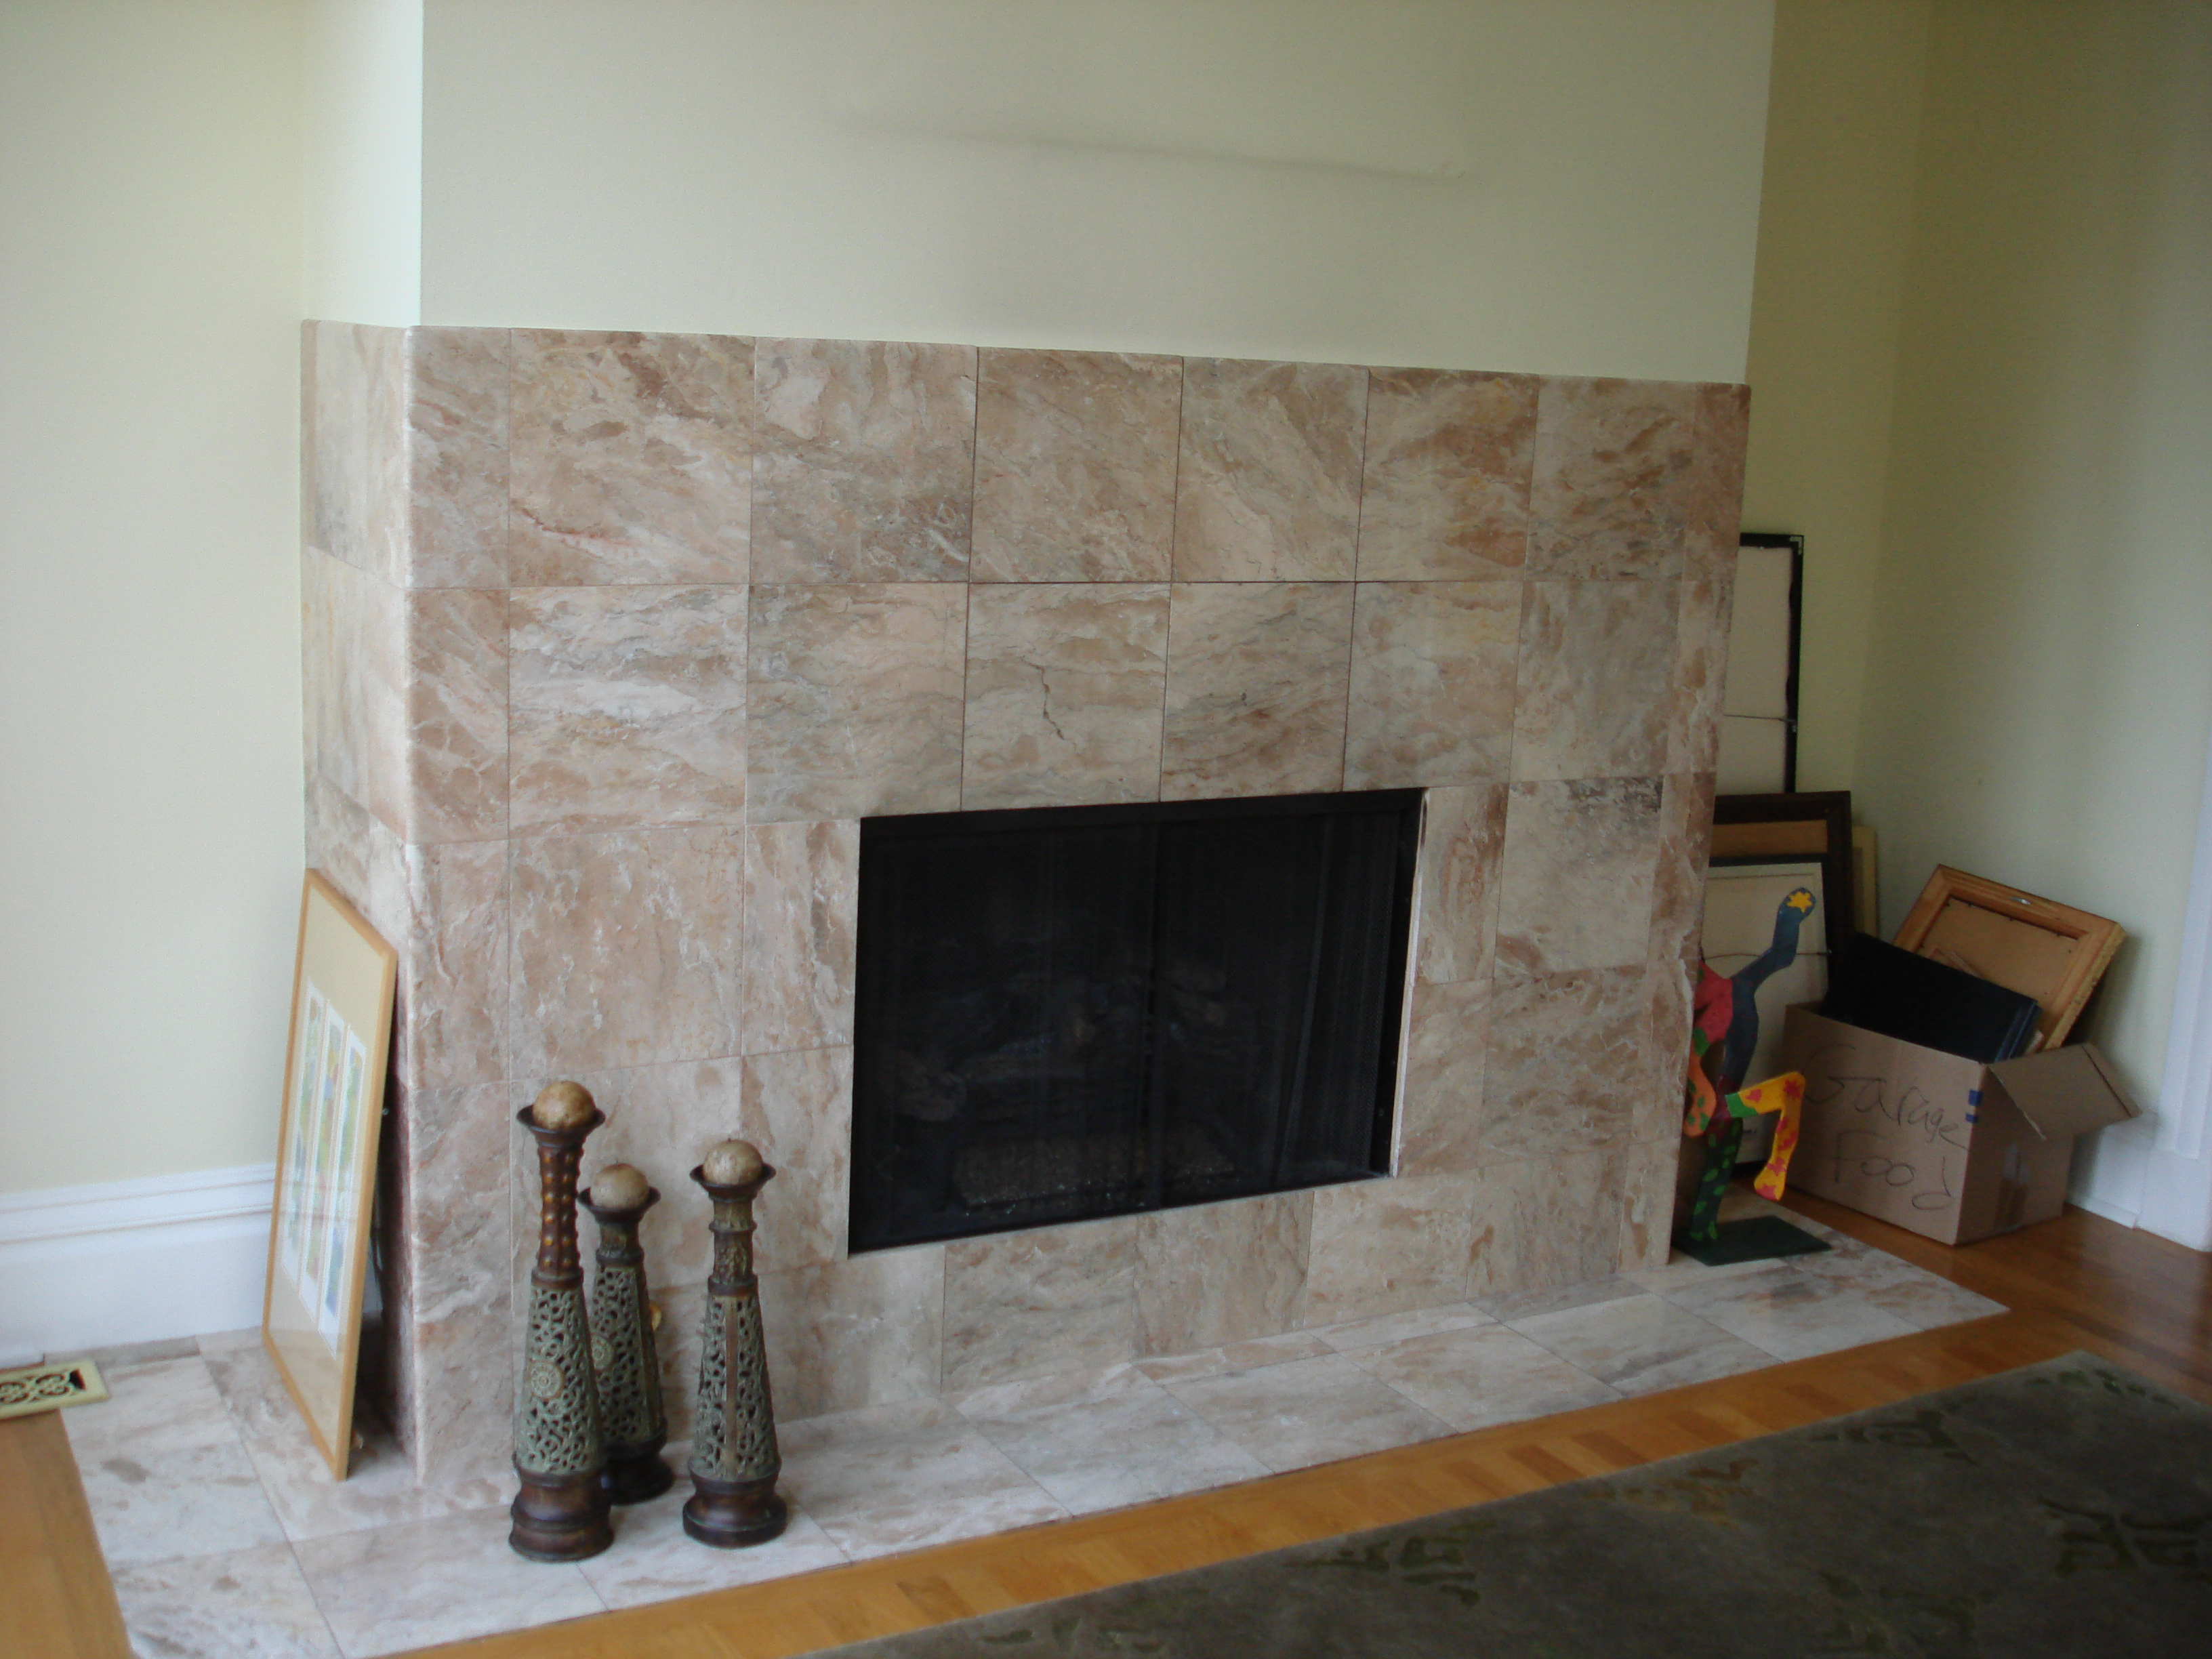 Mantle Without Fireplace Logs For A Gas Fireplace Images Why Not Use The Inside Of Your